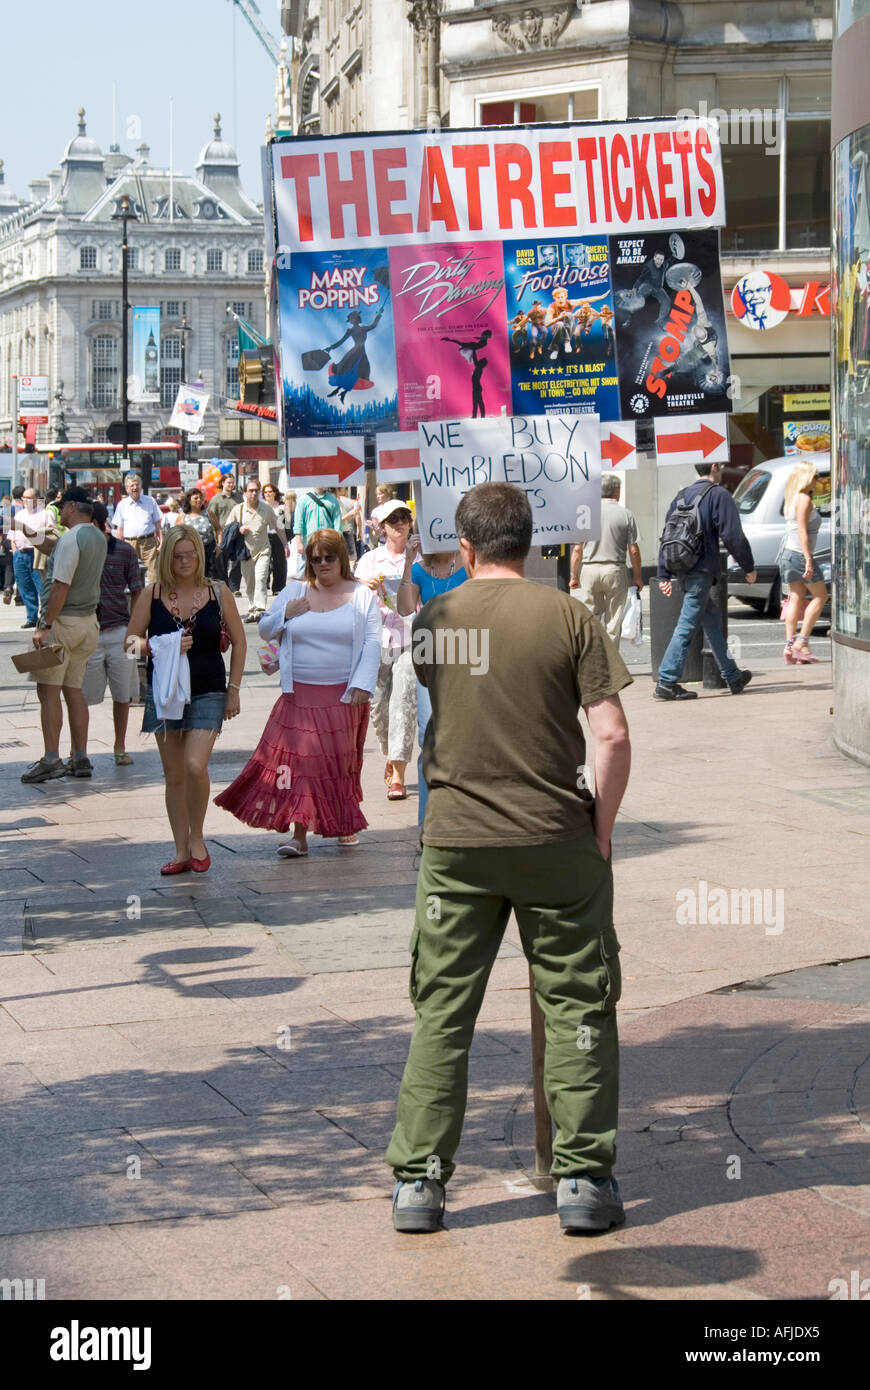 Leicester Square man holding advertising board pointing towards location for obtaining theatre and Wimbledon tennis tickets - Stock Image